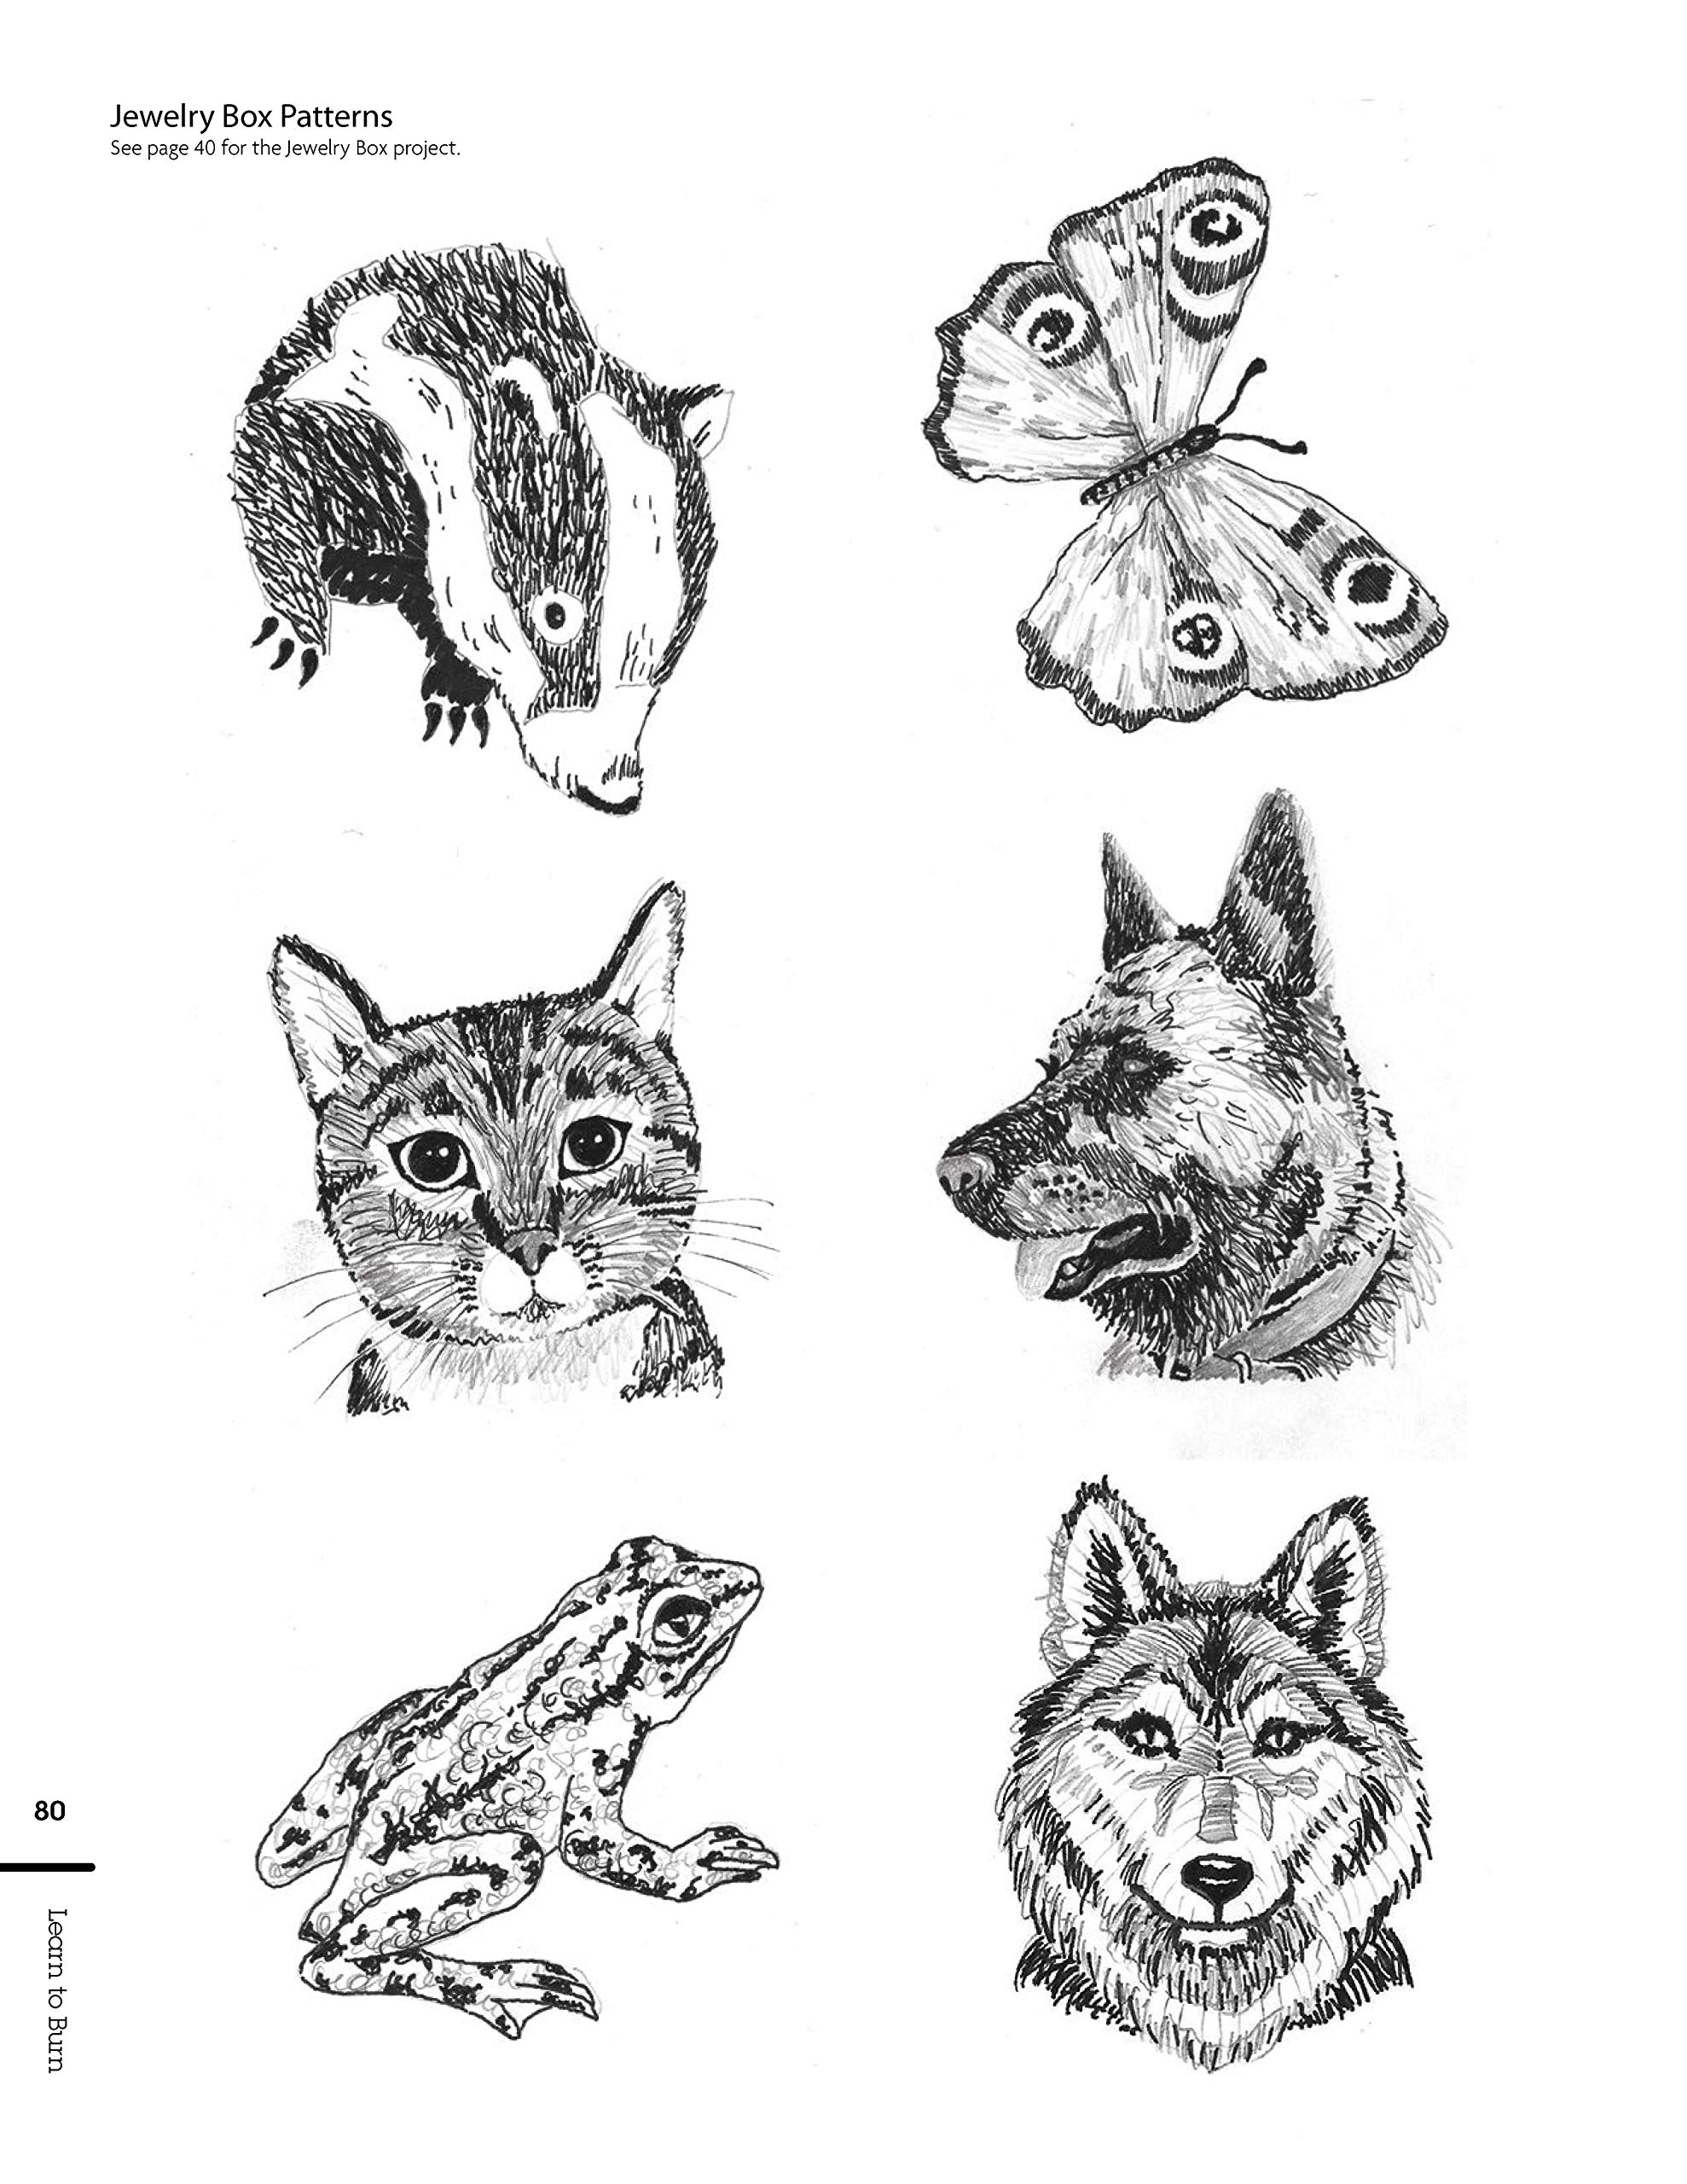 Learn To Burn A Step By Guide Getting Started In Pyrography Fox Chapel Publishing Easily Create Beautiful Art Gifts With 14